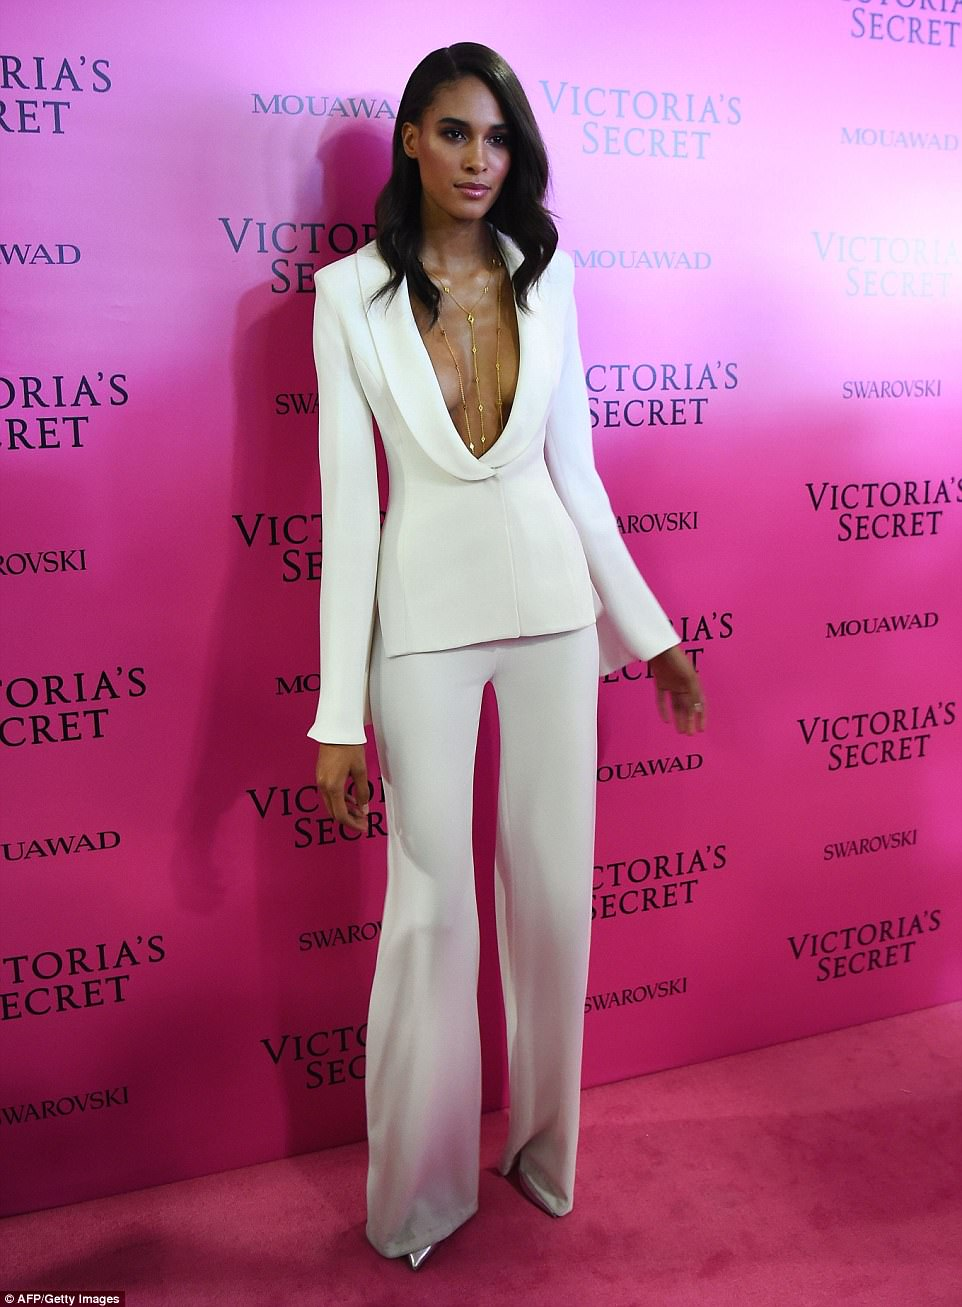 Busty: Cindy Bruna put on a seriously busty display in a plunging white suit, which she teamed with a pair of flared white trousers and pointed silver heels